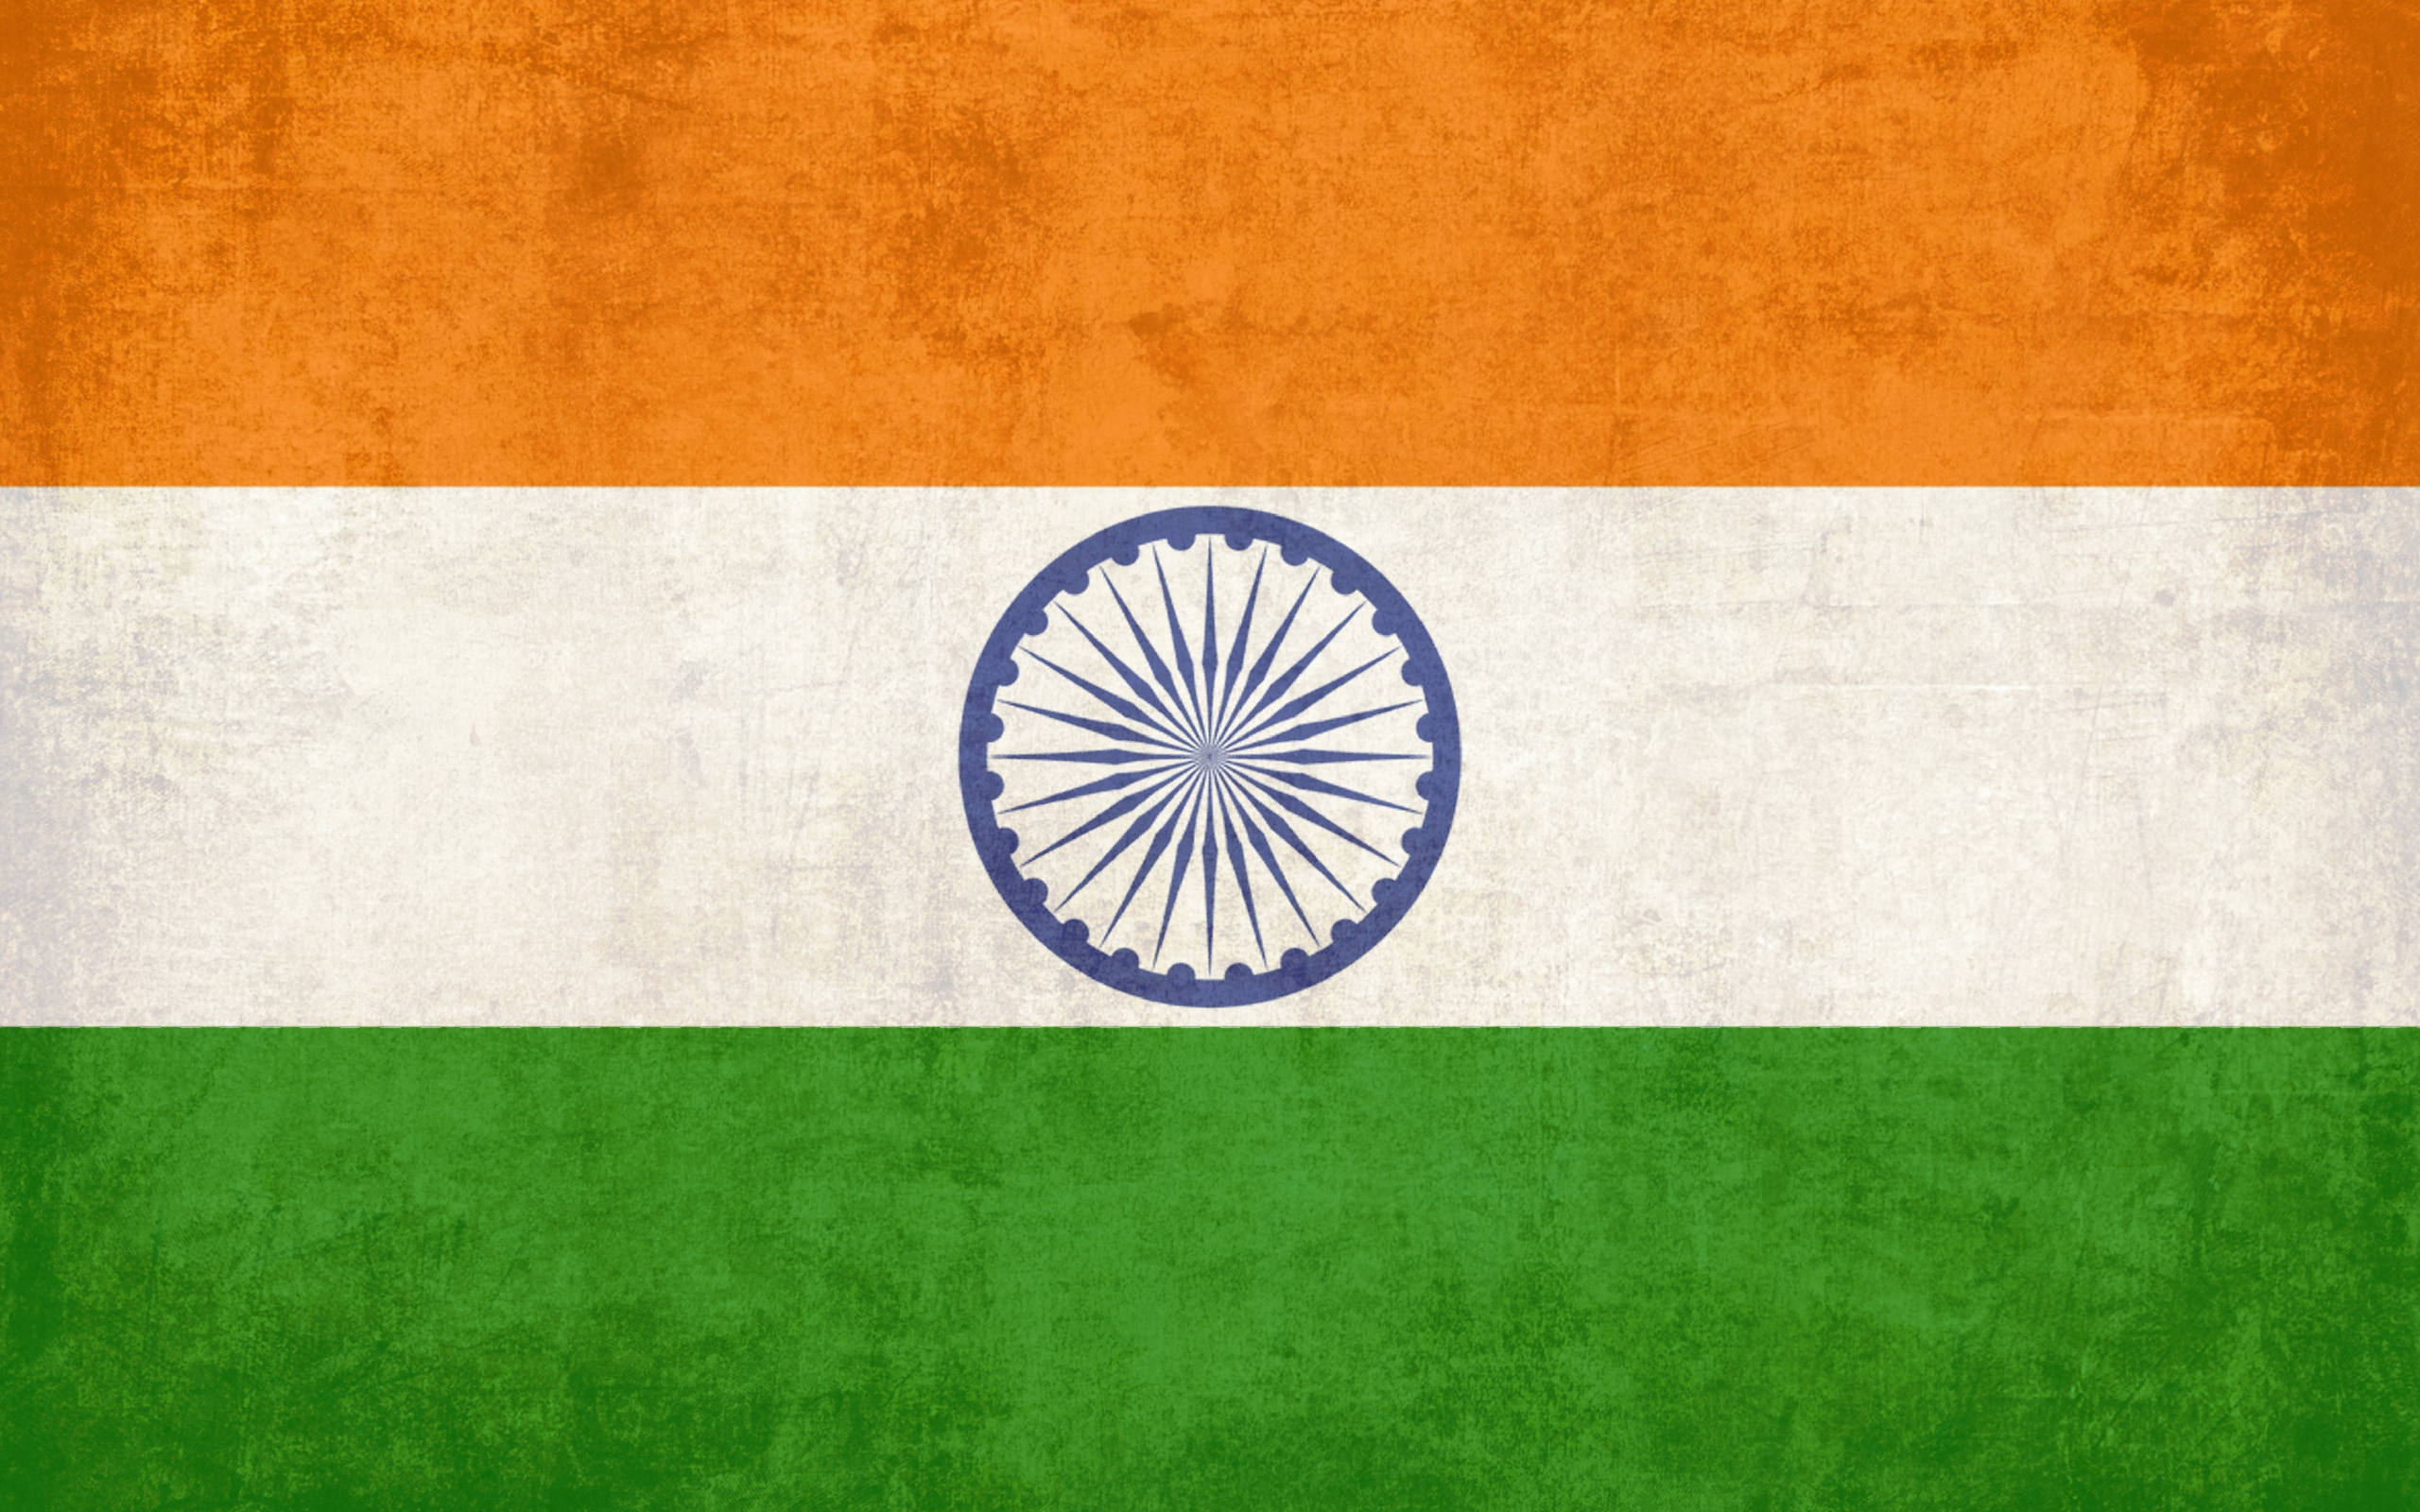 Indian Flag Wallpapers   HD Images Download   PolesMag 2560x1600